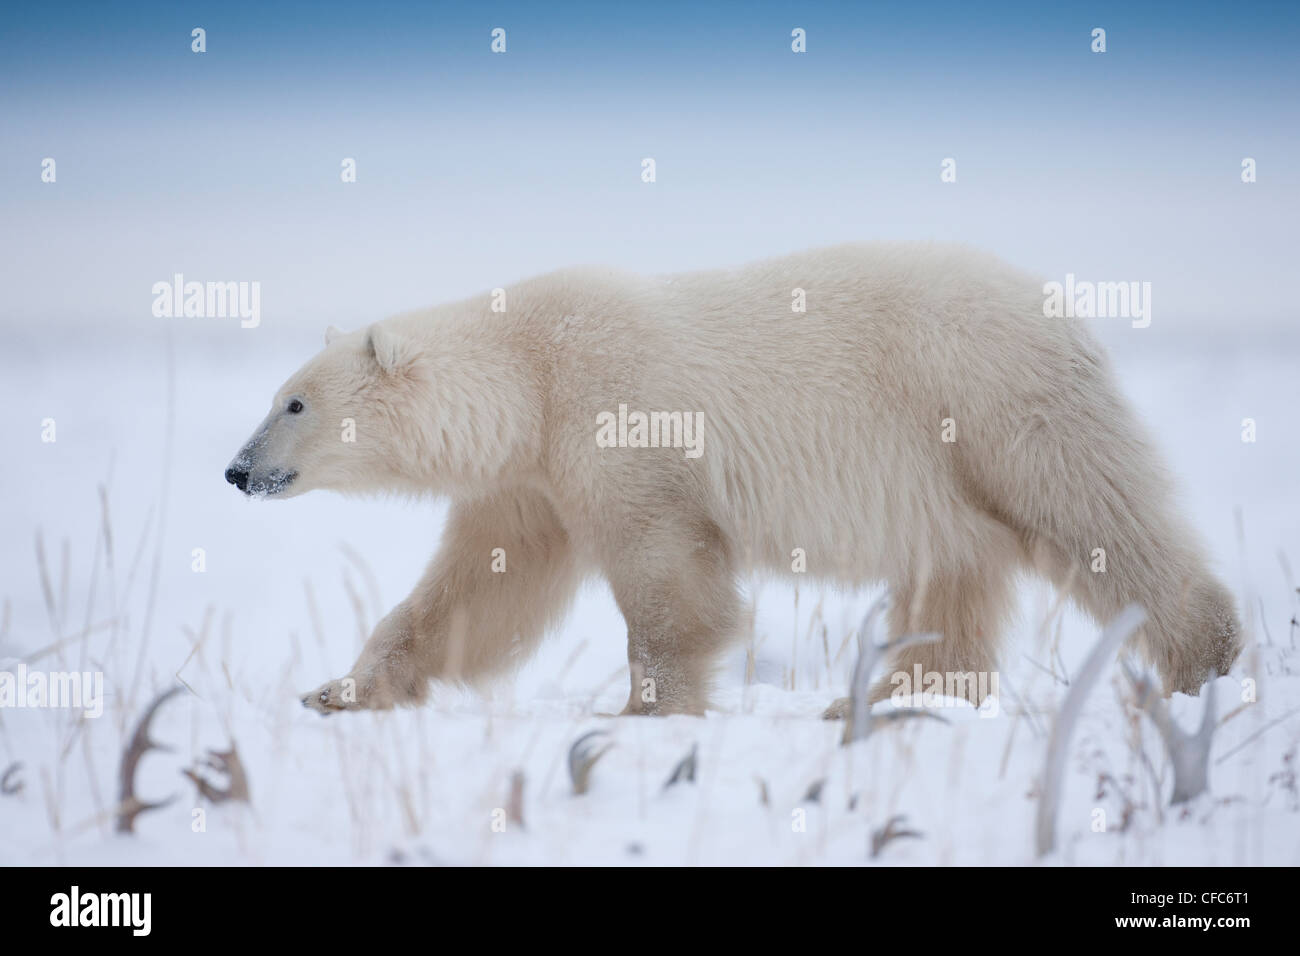 Polar Bear Ursus maritimus walks among caribou - Stock Image